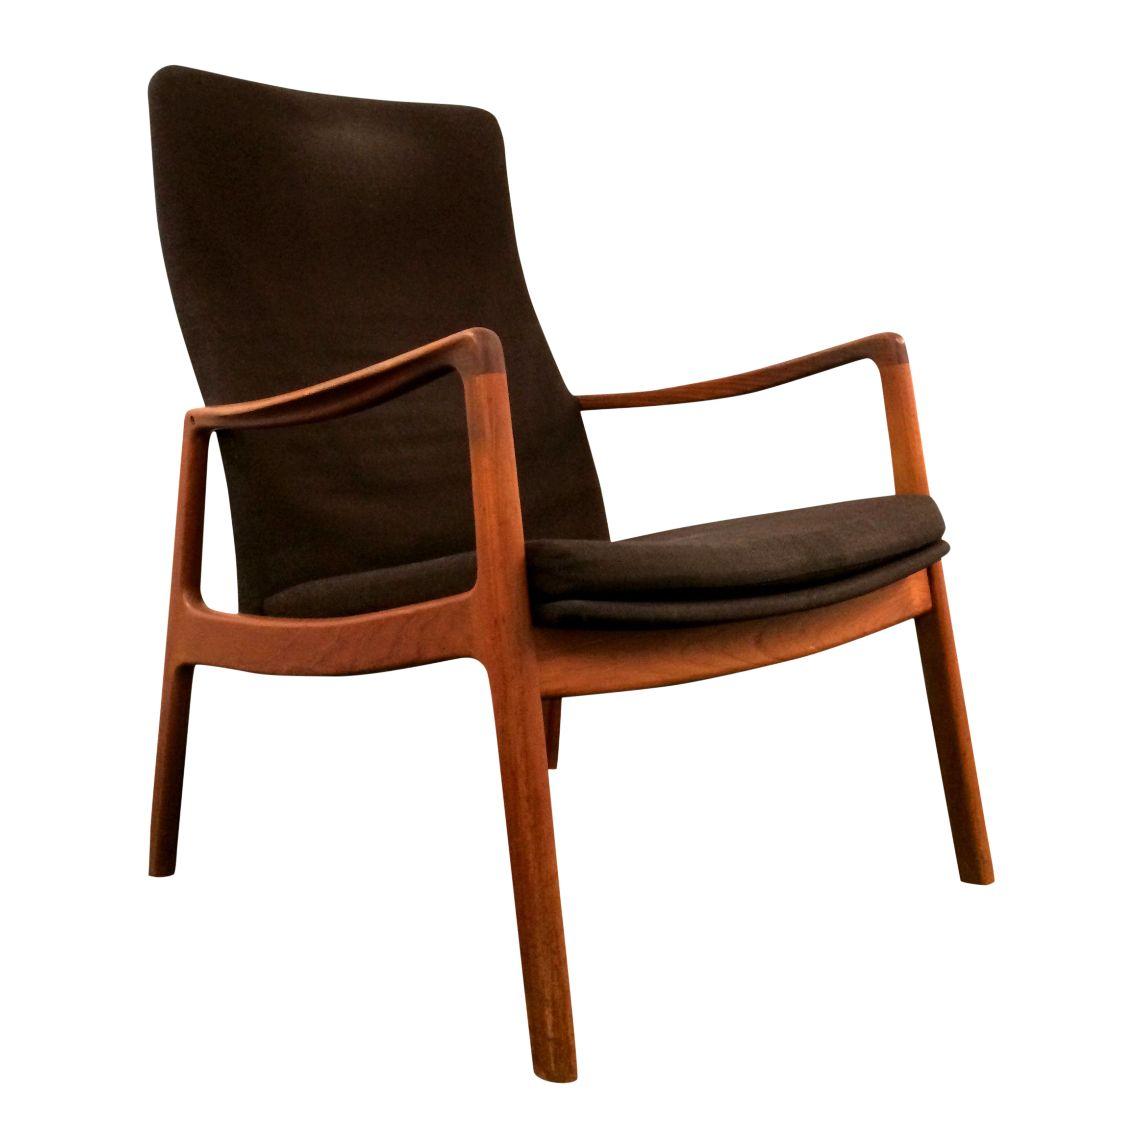 Ole Wanscher Teak and Upholstered Lounge Chair Chairish : ole wanscher teak and upholstered lounge chair 7960aspectfitampwidth640ampheight640 from www.chairish.com size 640 x 640 jpeg 25kB